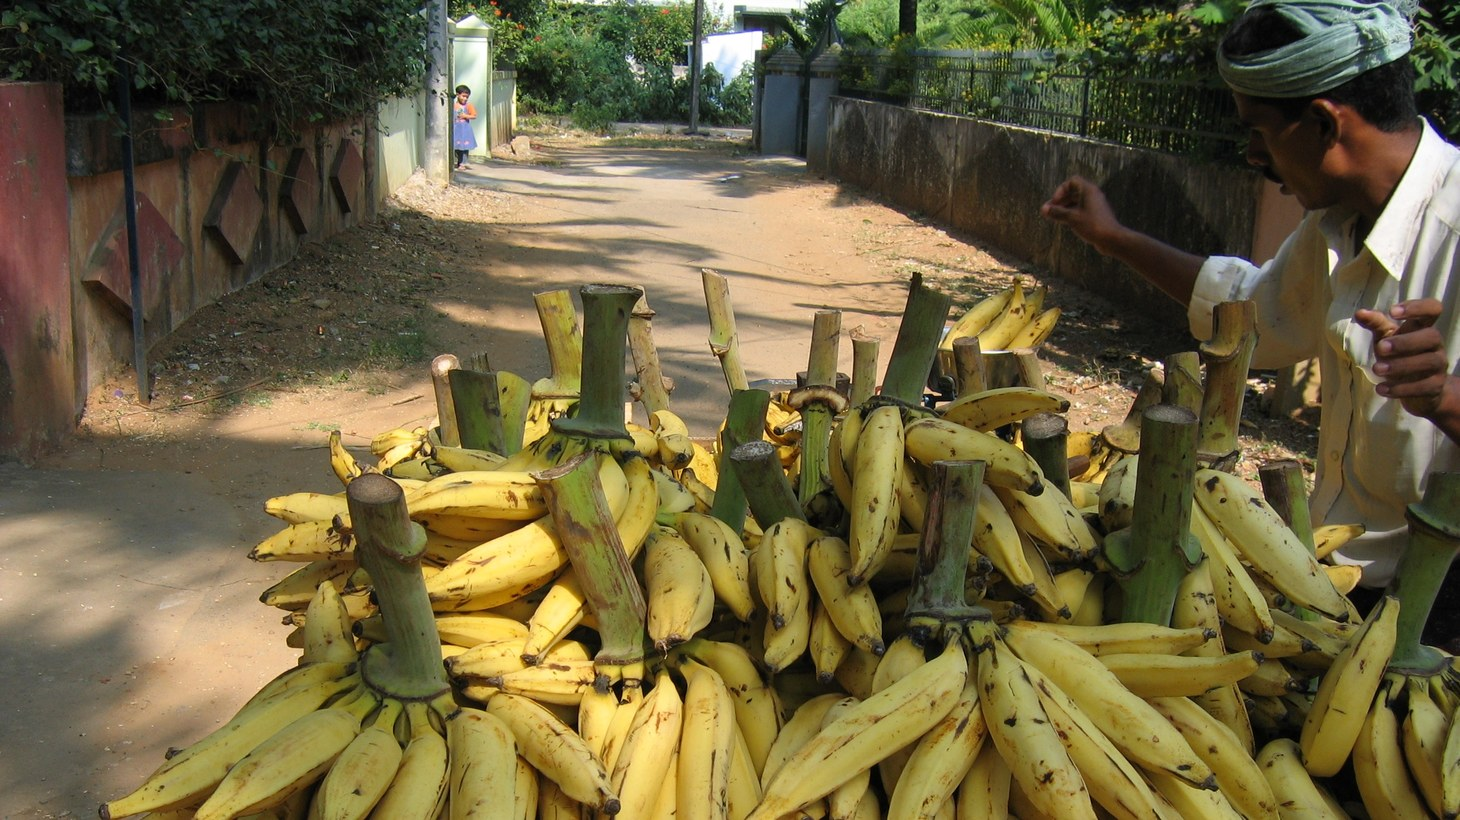 Plantains are used in many dishes from East Africa.